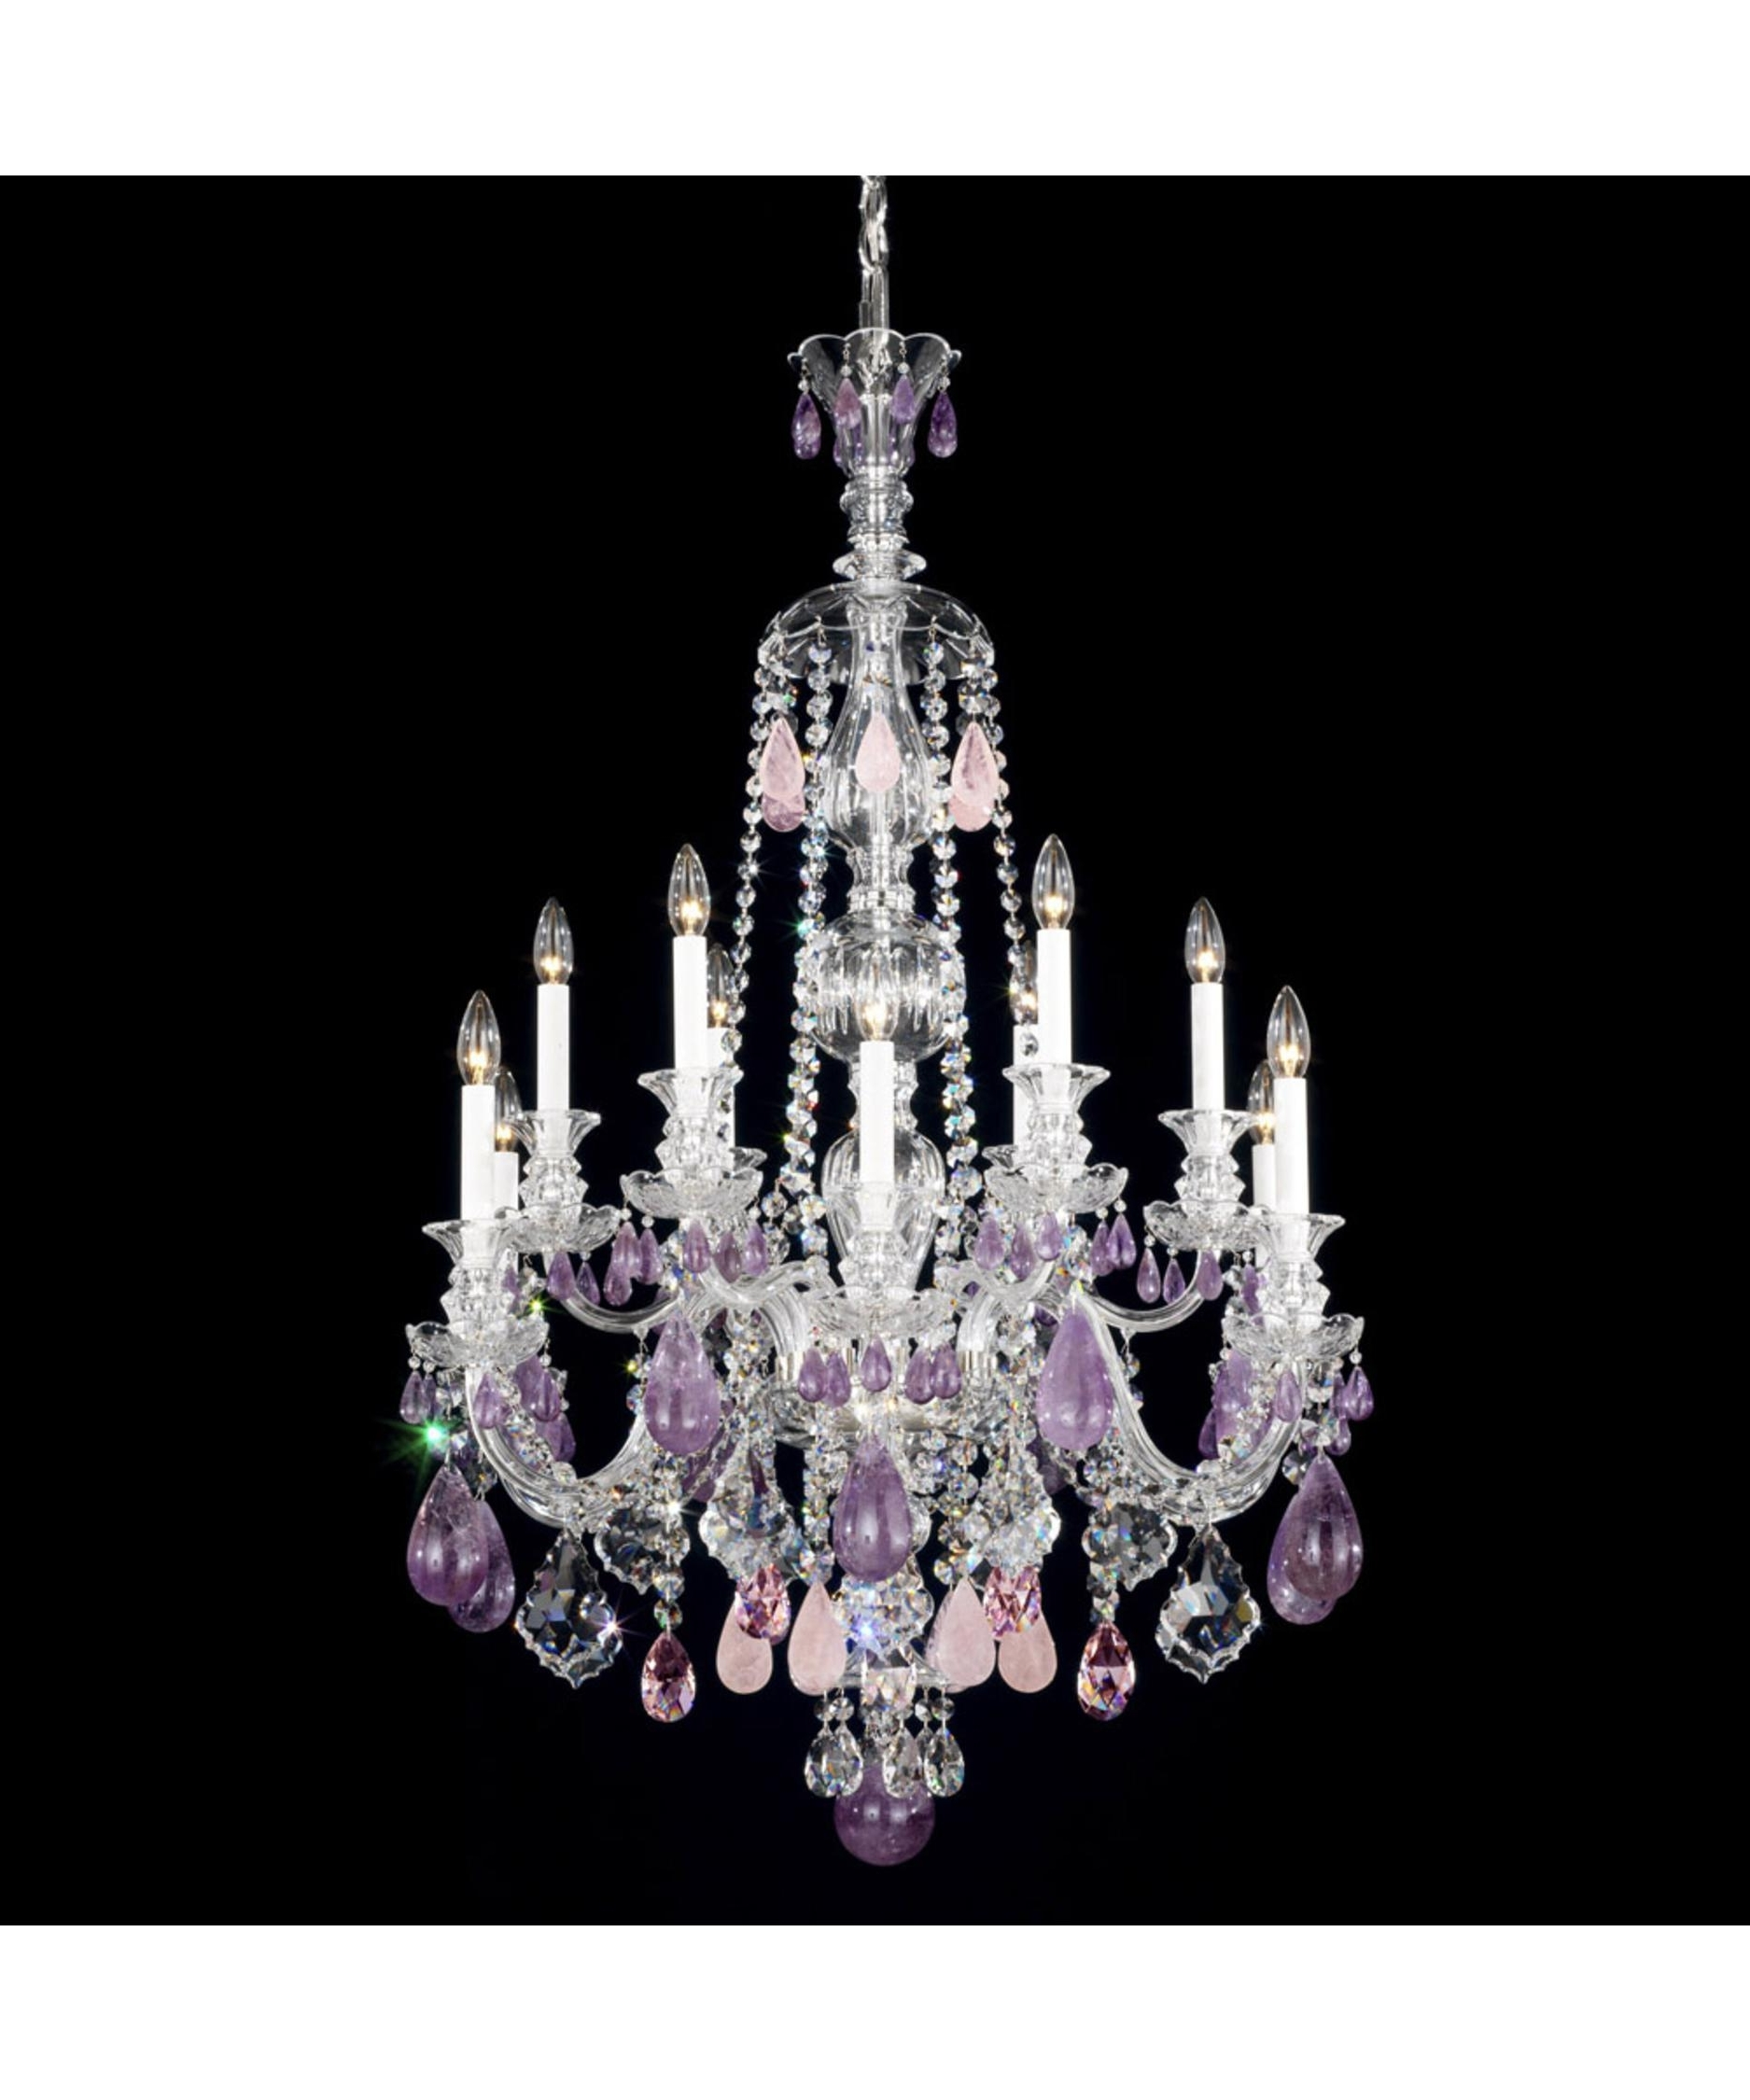 Schonbek 5508 Hamilton Rock Crystal 30 Inch Wide 12 Light Chandelier For Latest Purple Crystal Chandelier Lighting (View 13 of 15)